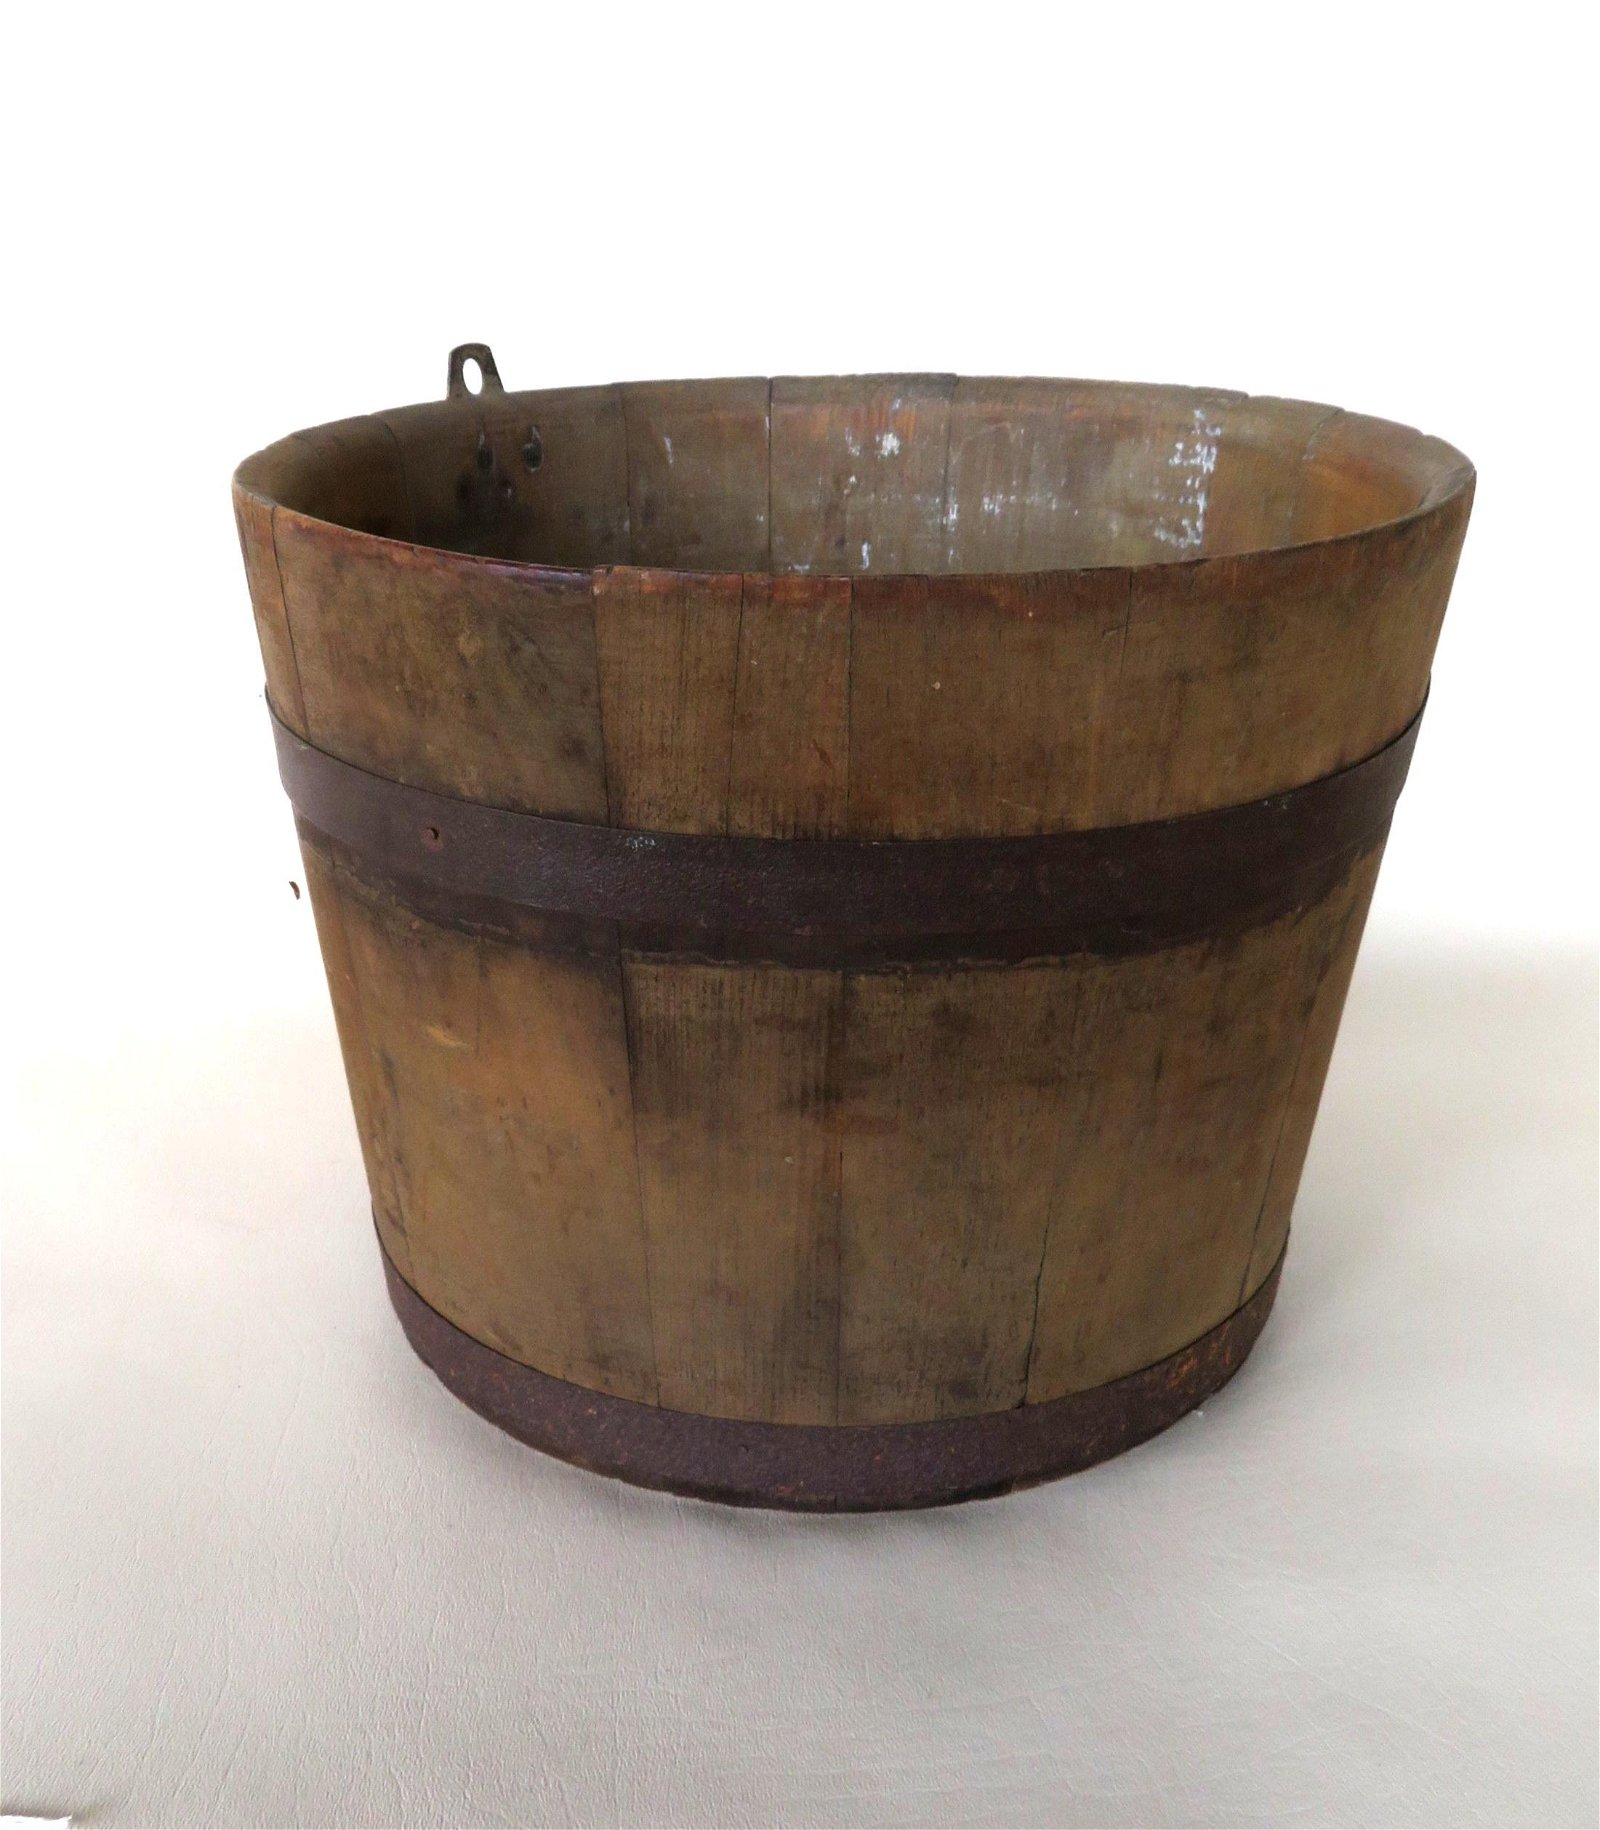 Sap bucket, North Family Shakers, Enfield, New